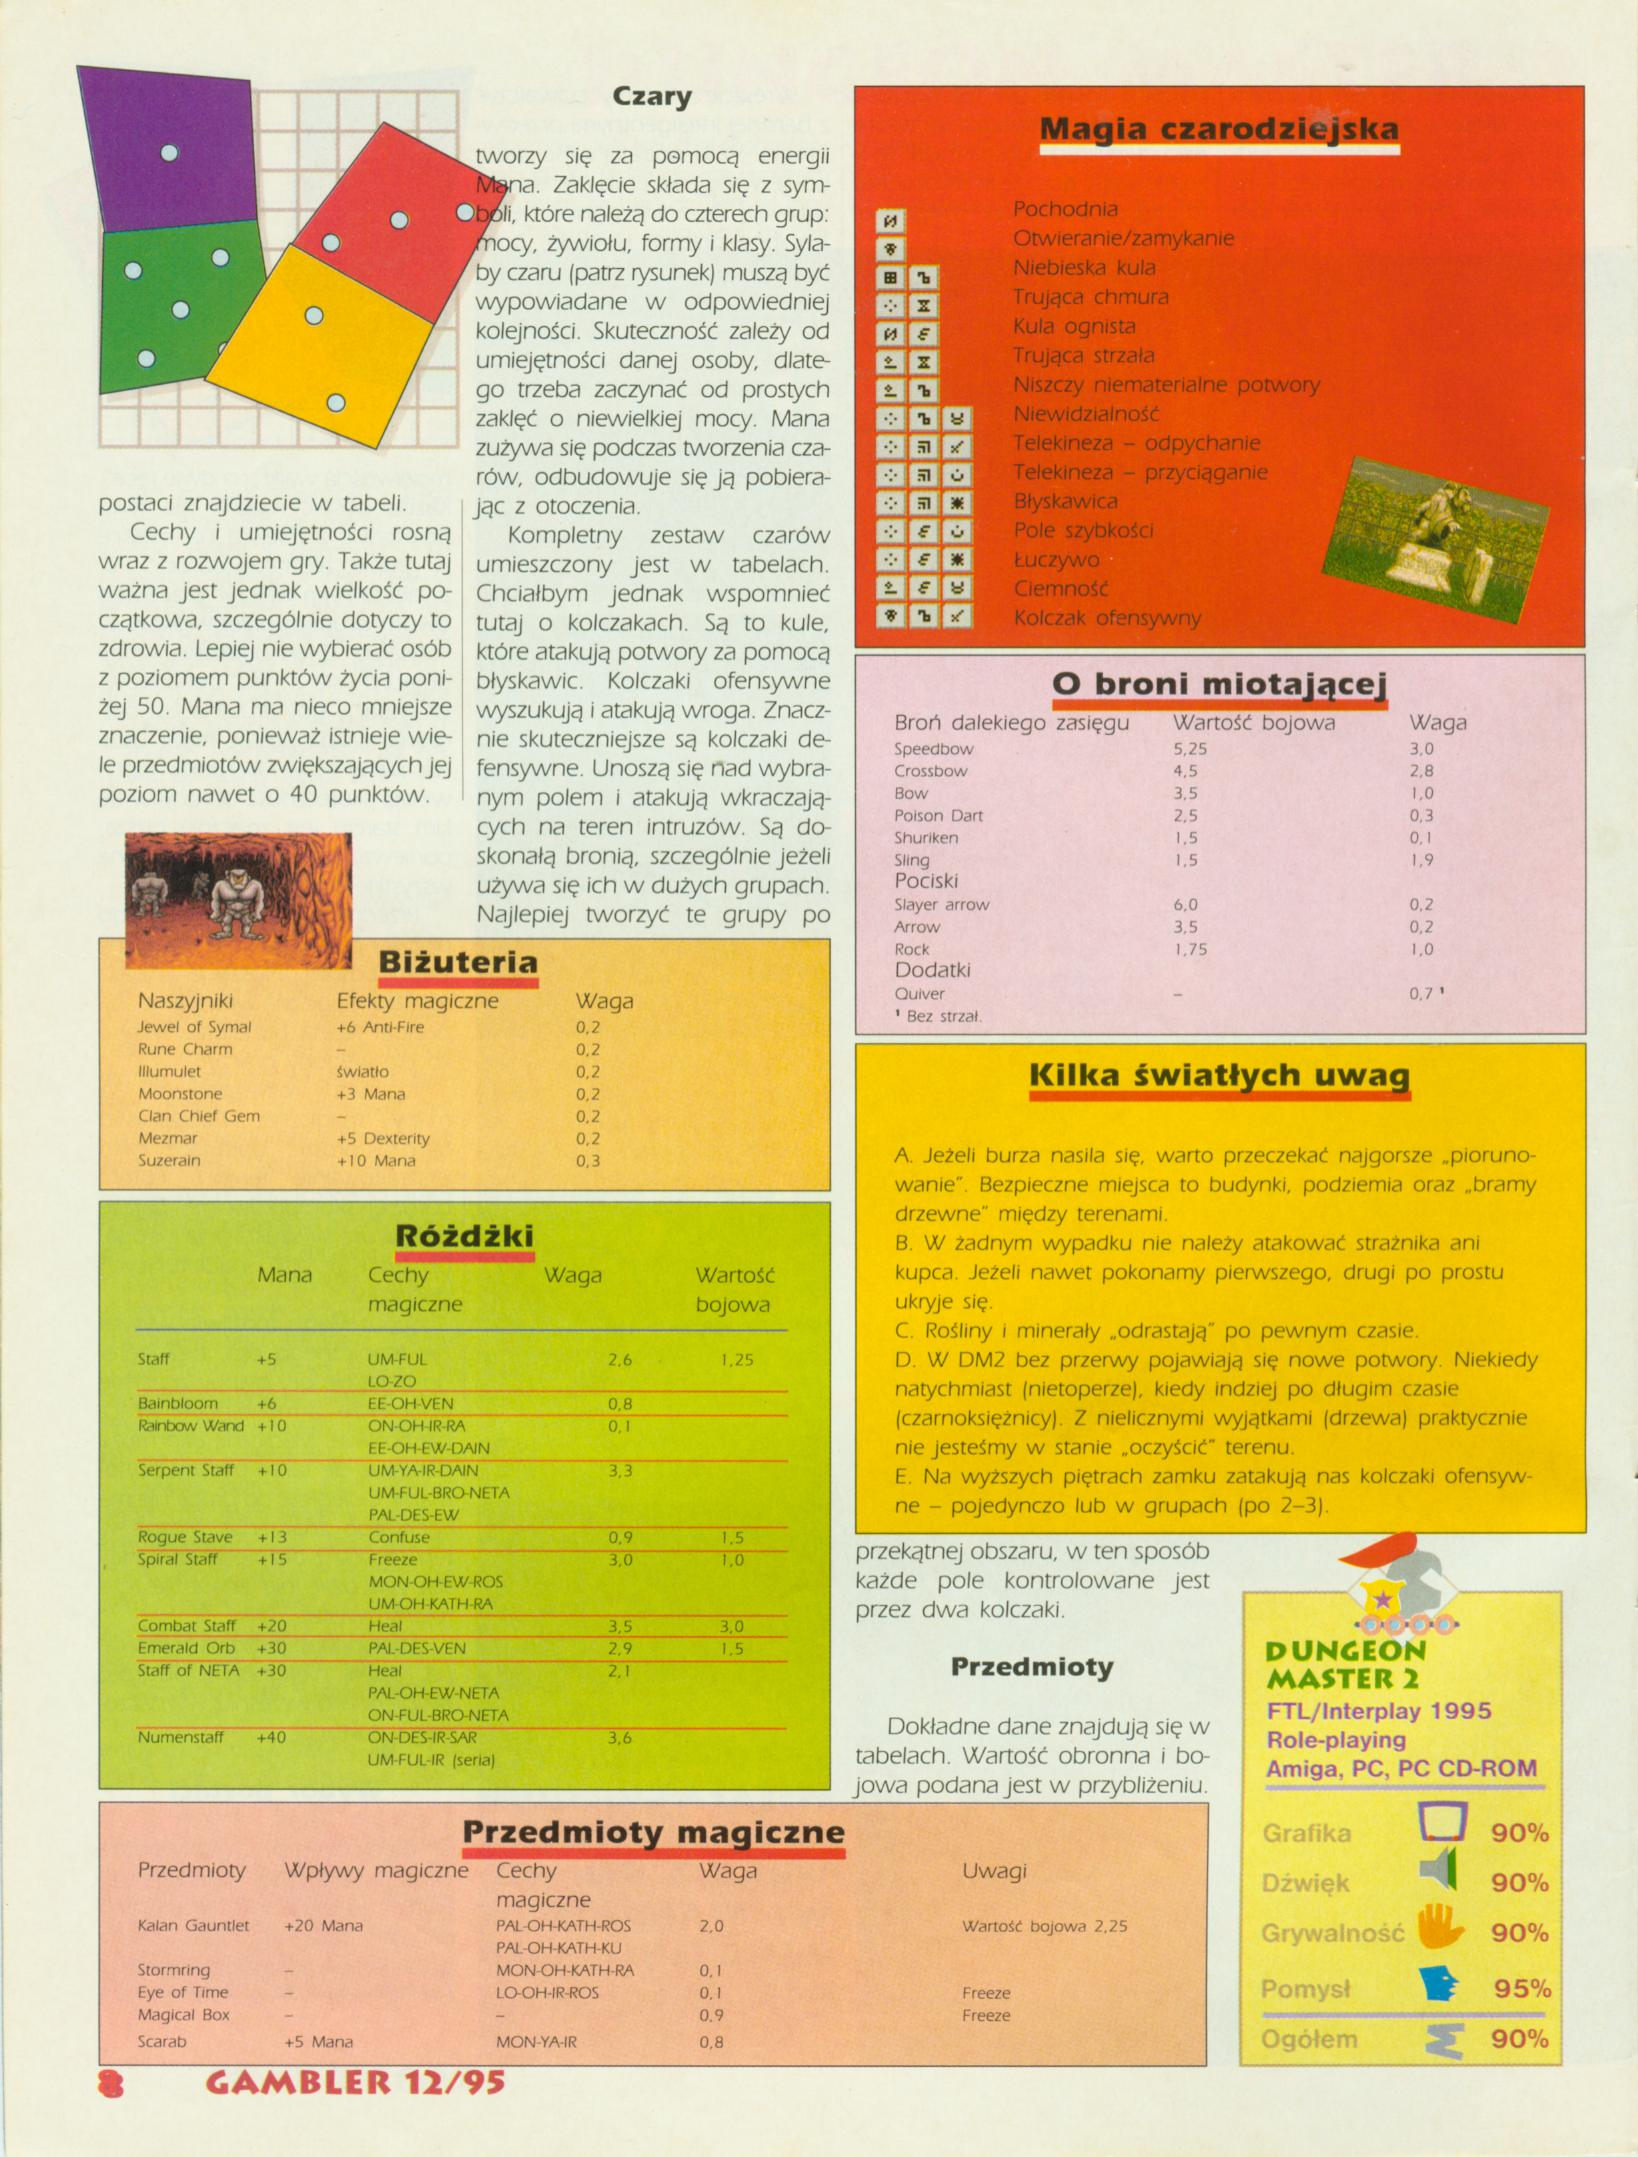 Dungeon Master II Guide published in Polish magazine 'Gambler', December 1995, Page 8